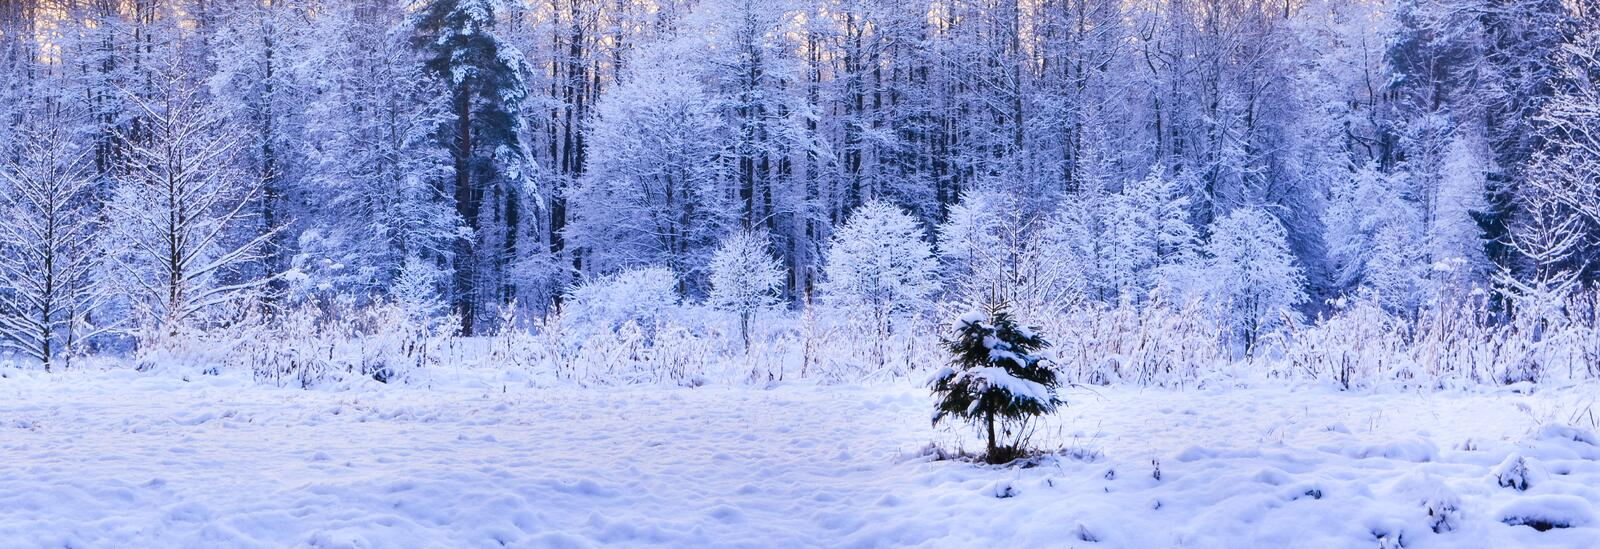 Lonely little fir-tree on winter forest background royalty free stock photo